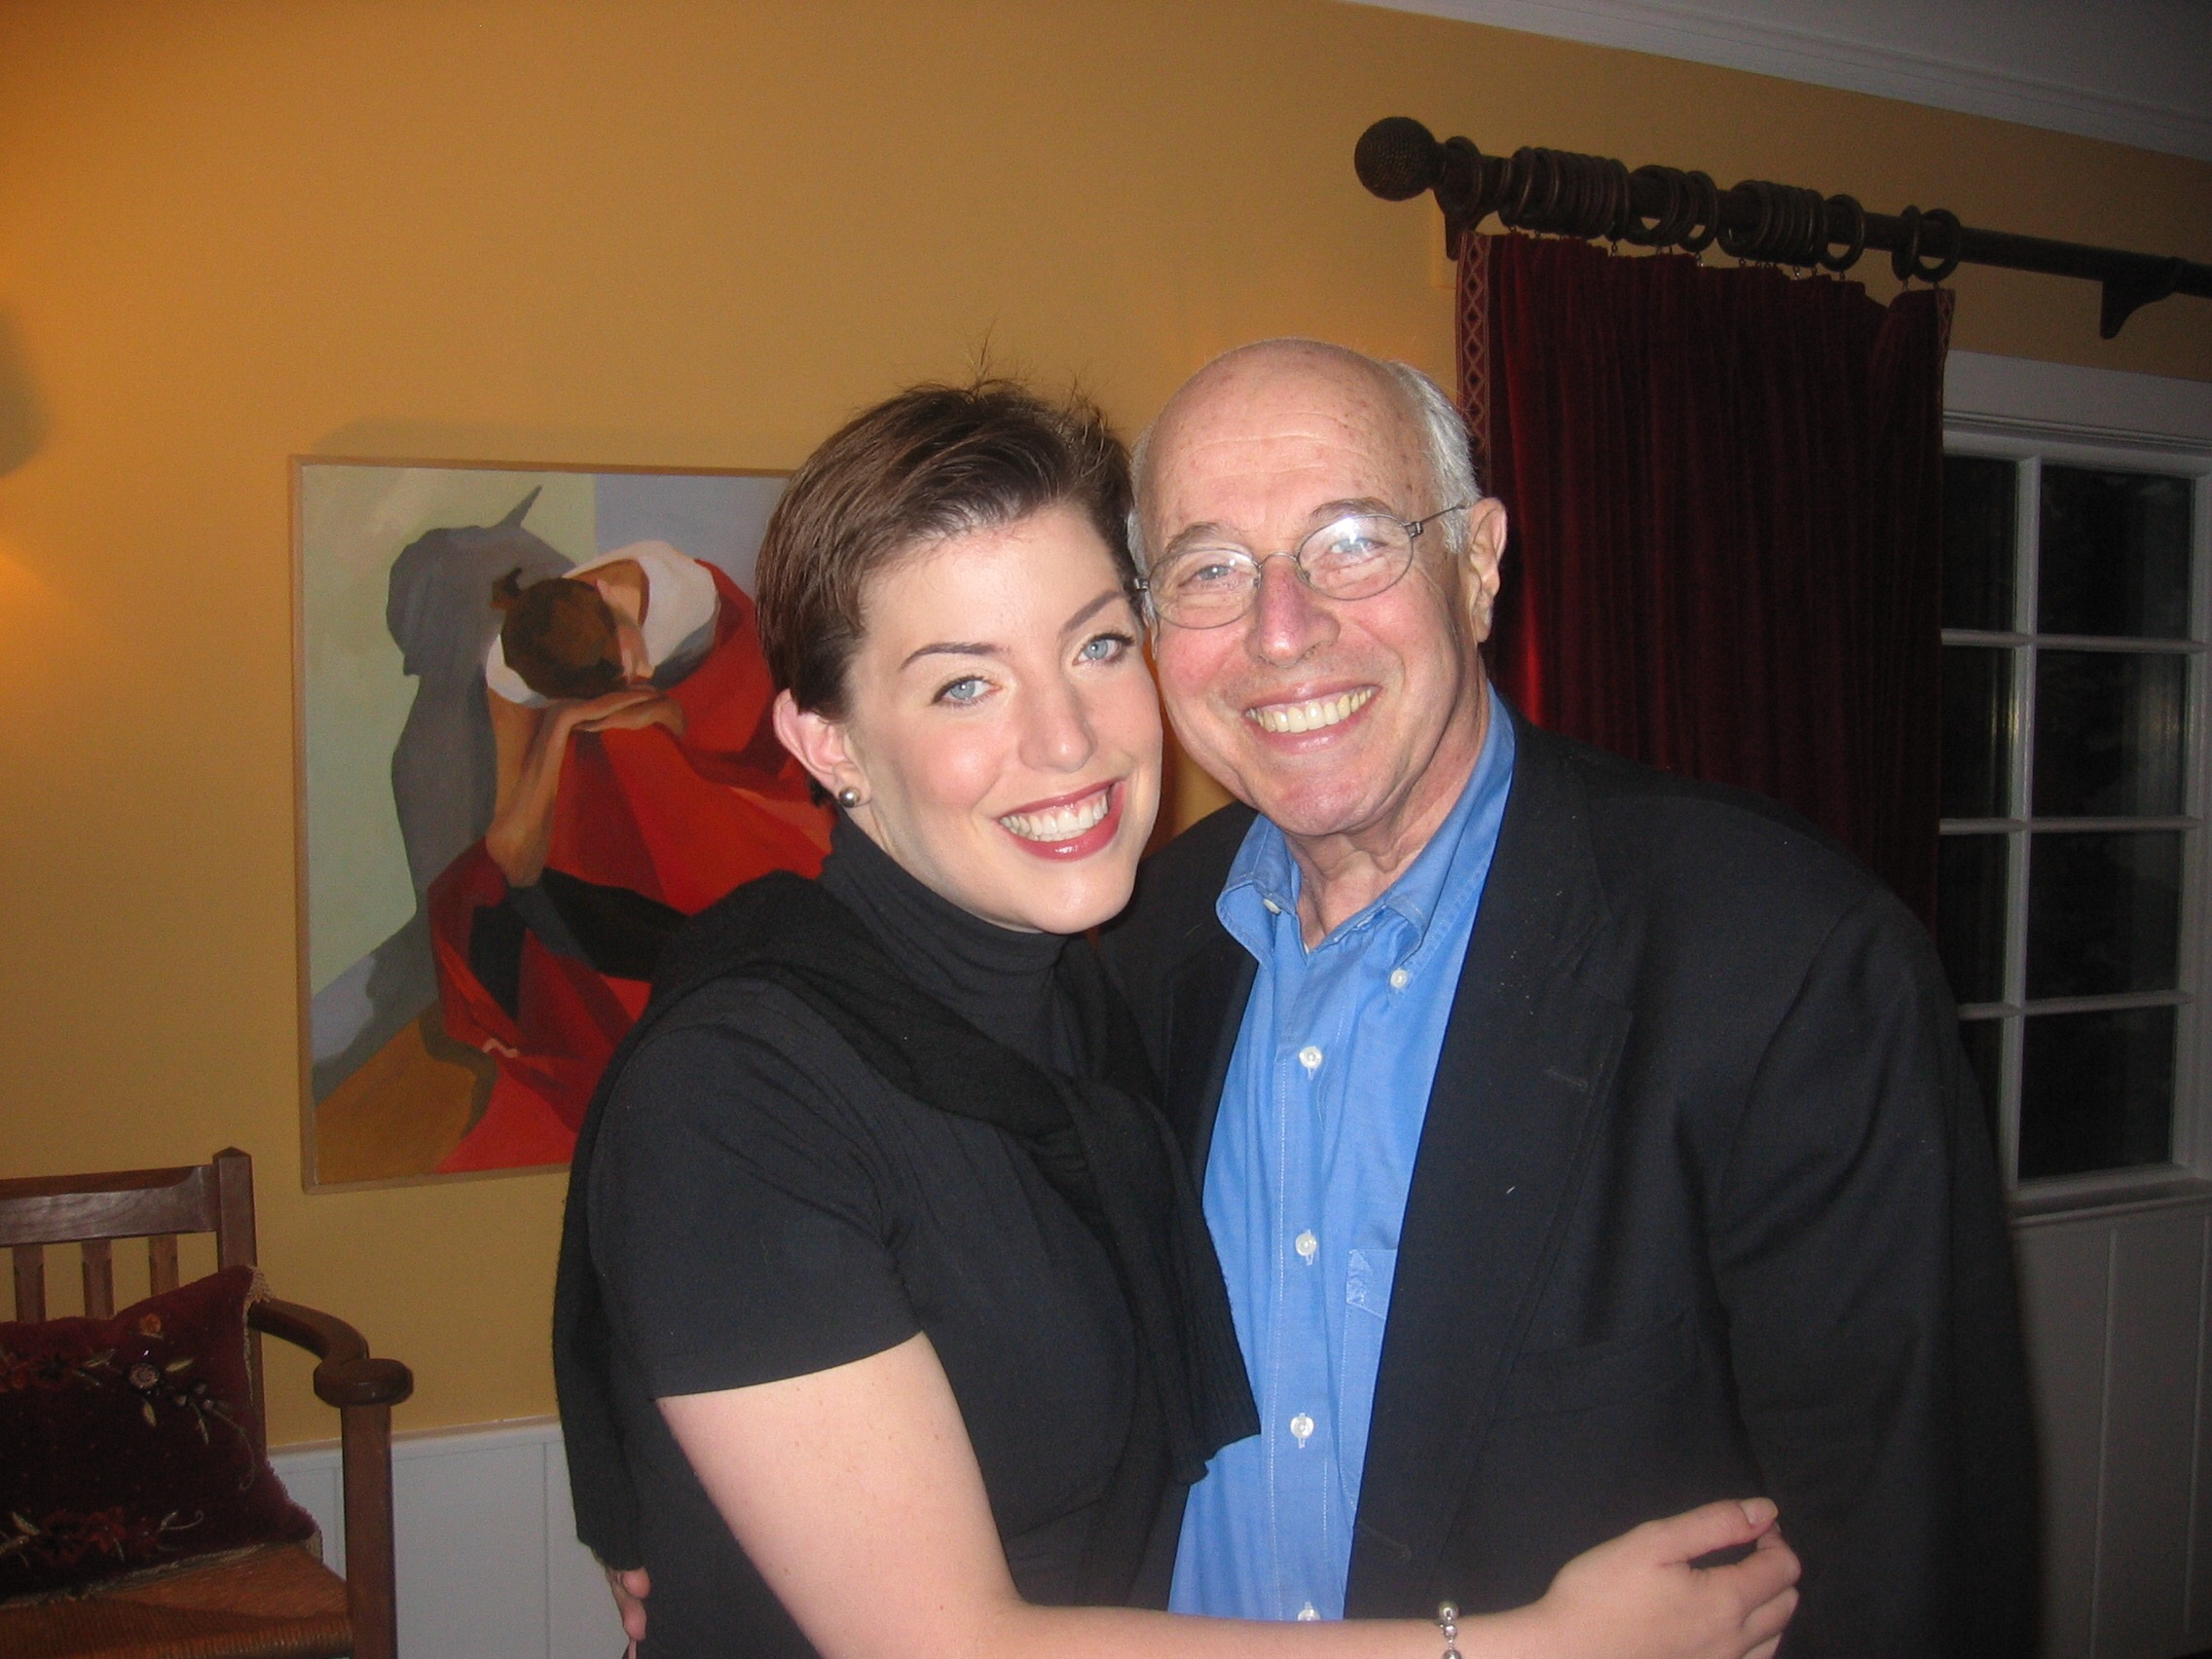 Elisabeth and her father, Dr. Aaron Rausen.